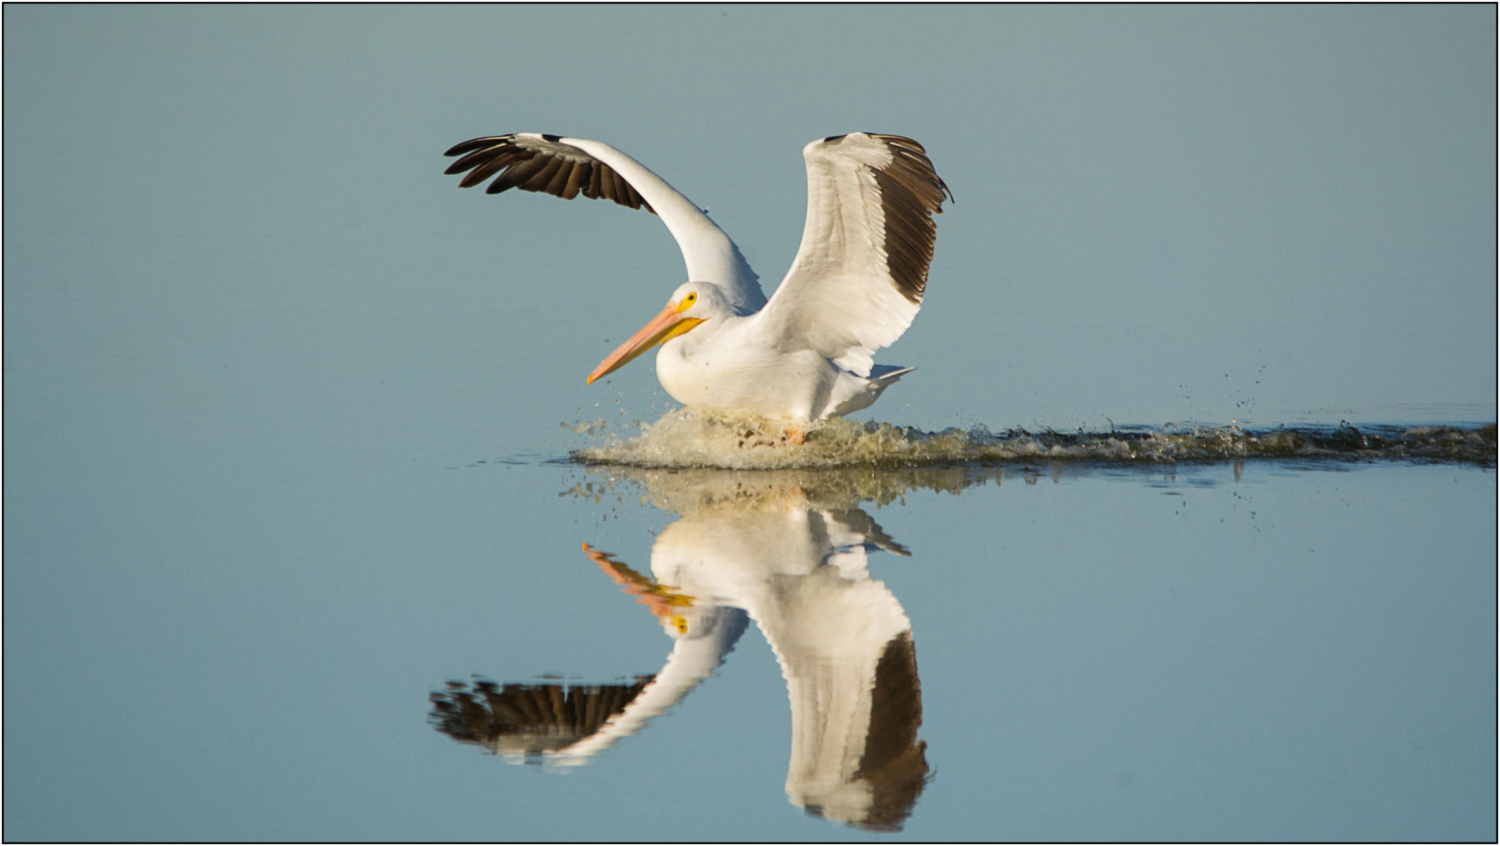 Stock photo of an American White Pelican